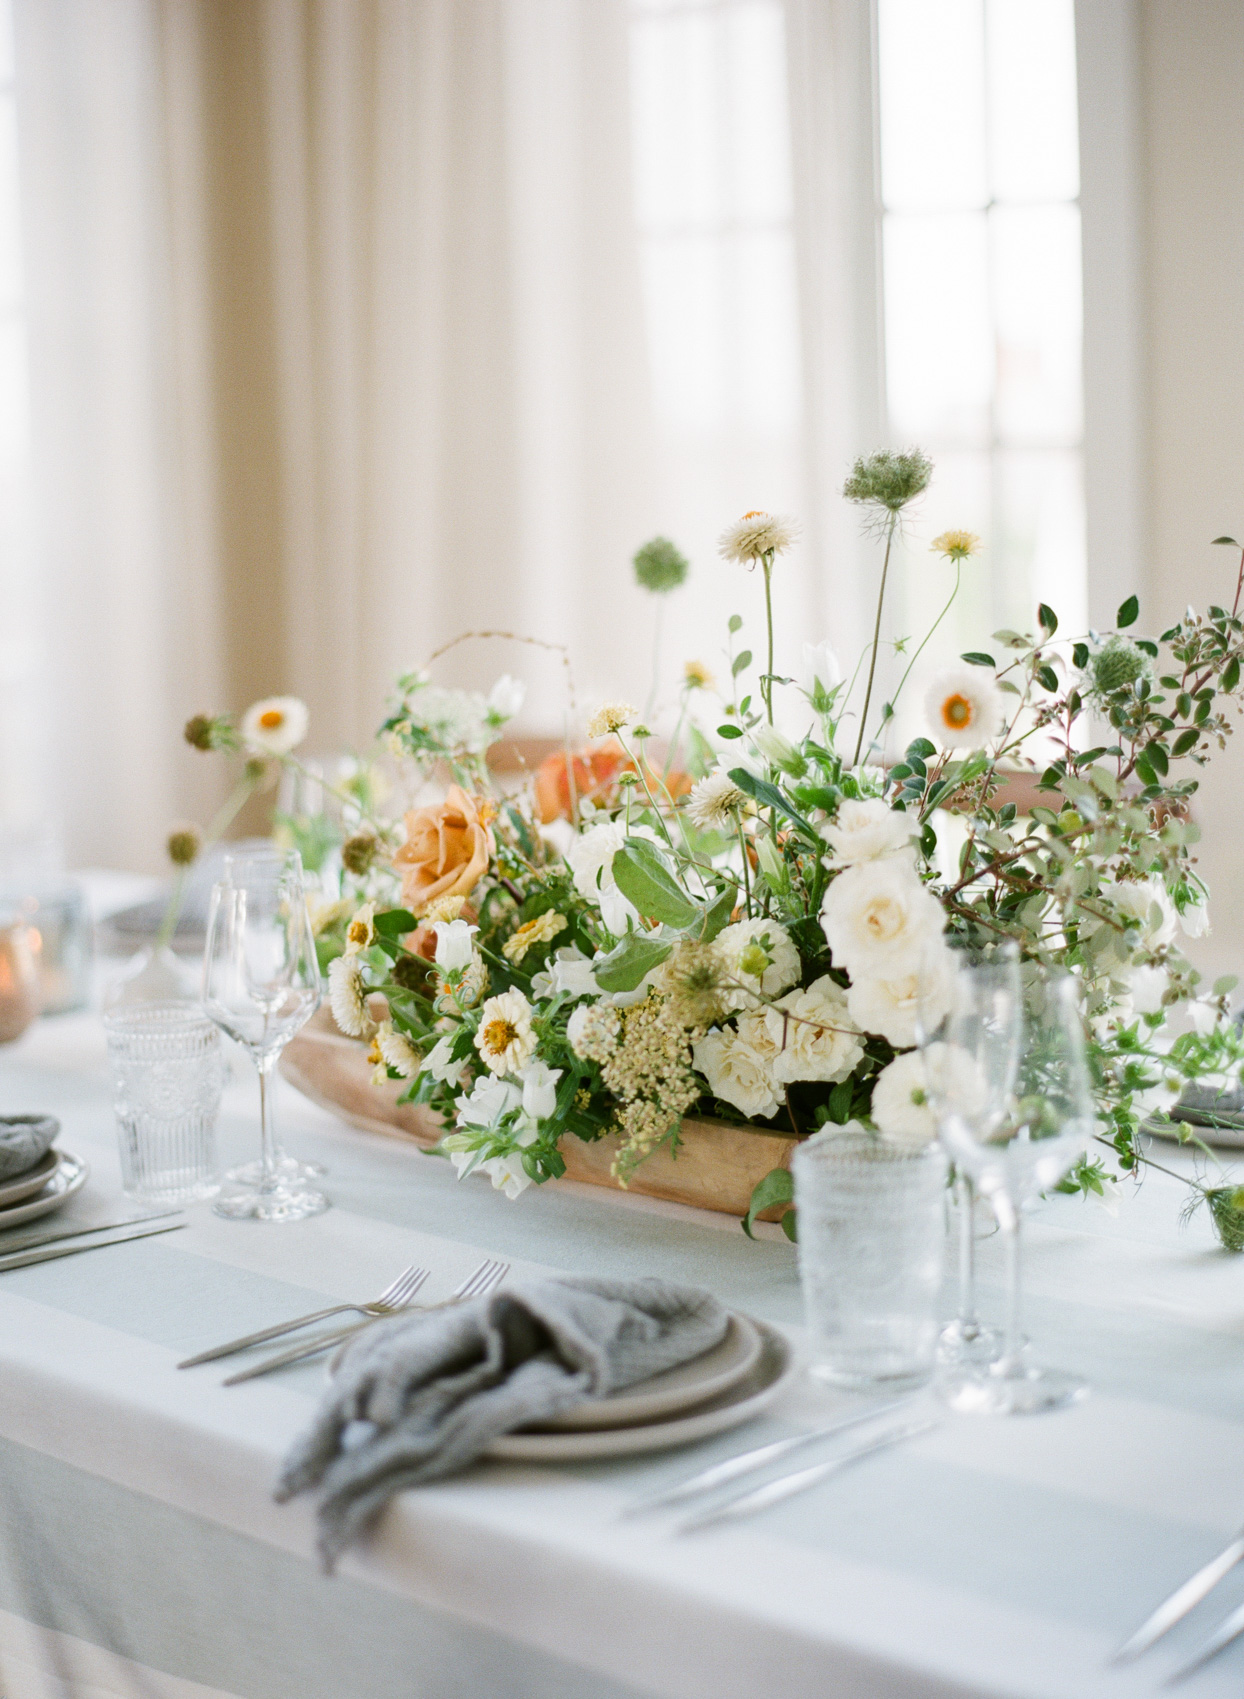 white and orange floral centerpieces on pale blue tablecloth